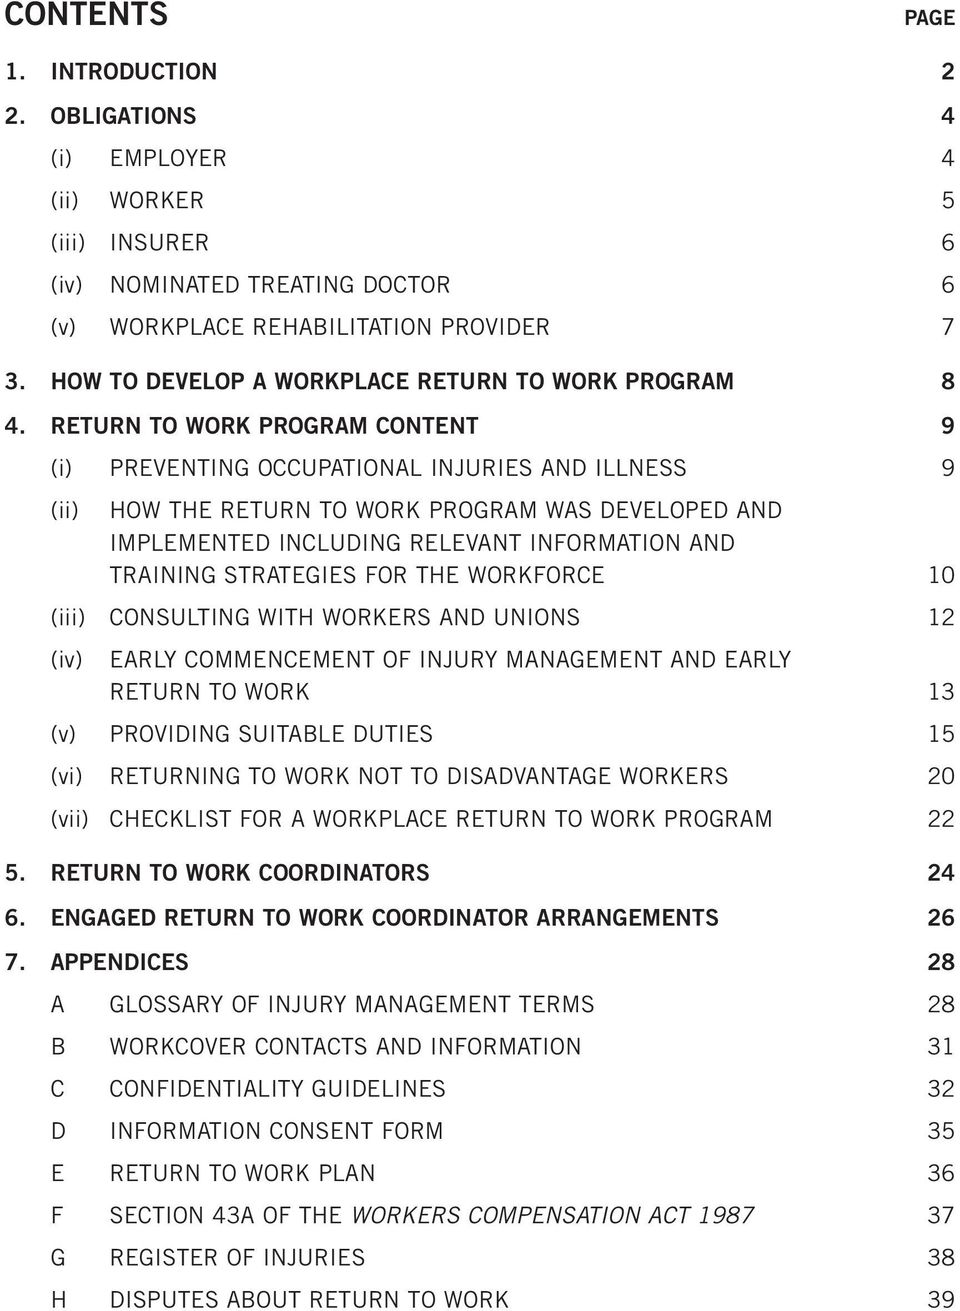 RETURN TO WORK PROGRAM CONTENT 9 (i) PREVENTING OCCUPATIONAL INJURIES AND ILLNESS 9 (ii) HOW THE RETURN TO WORK PROGRAM WAS DEVELOPED AND IMPLEMENTED INCLUDING RELEVANT INFORMATION AND TRAINING